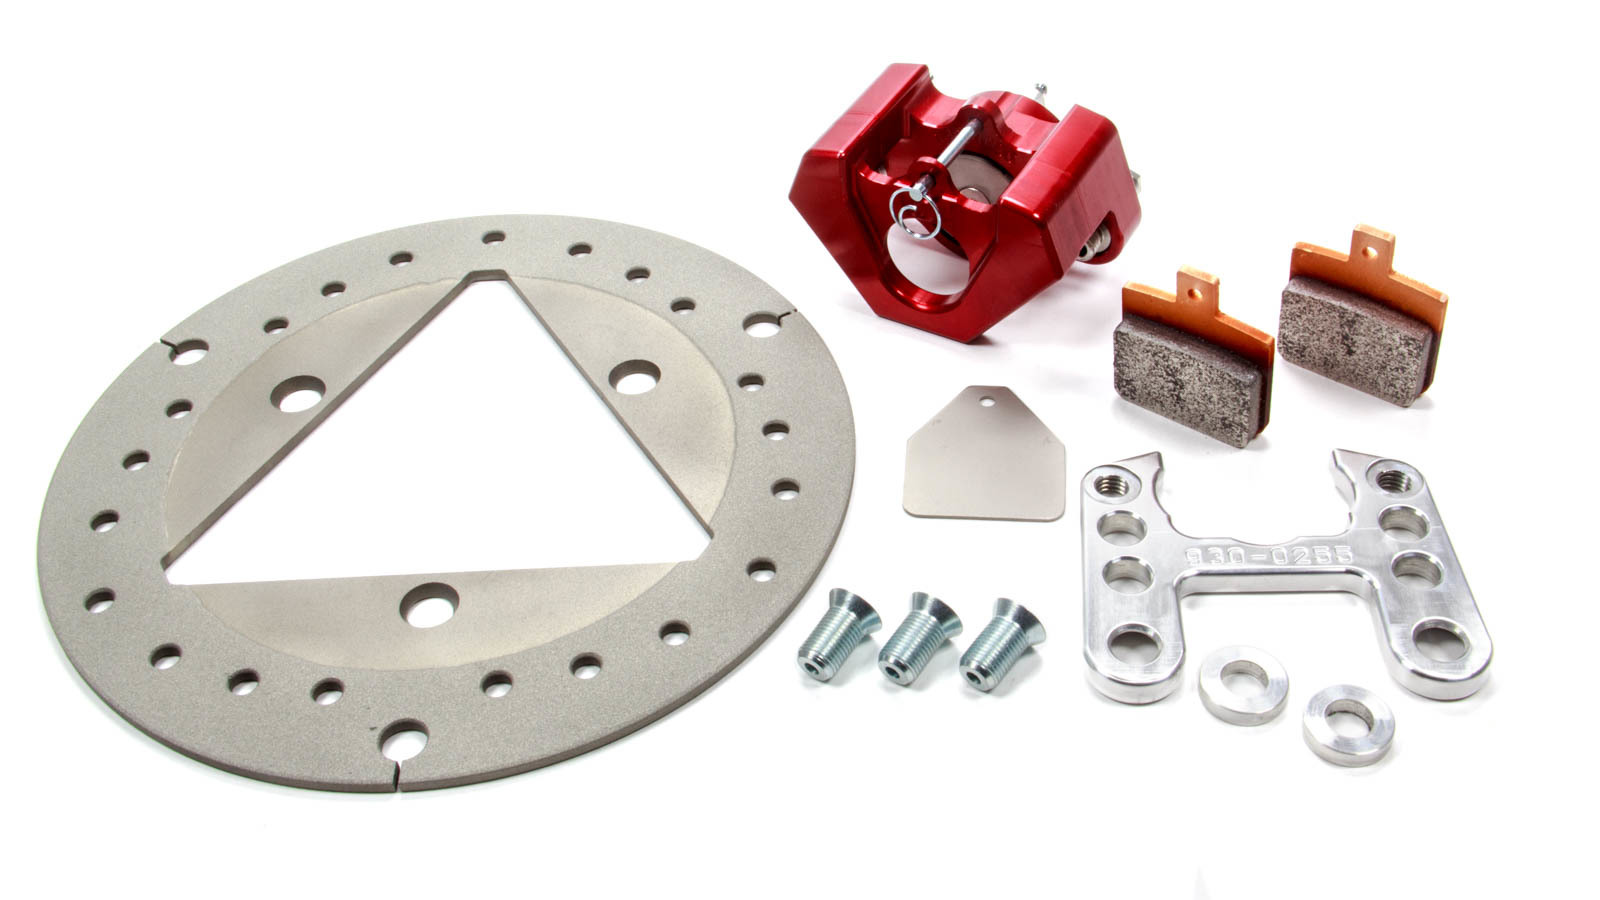 Red Devil-Ultra Lite Brakes 410-7200 Brake System, 100 Series, Front, 1 Piston Caliper, 10.000 in Drilled Solid Titanium Rotor, Red Anodize, Sprint Car Spindle, Kit